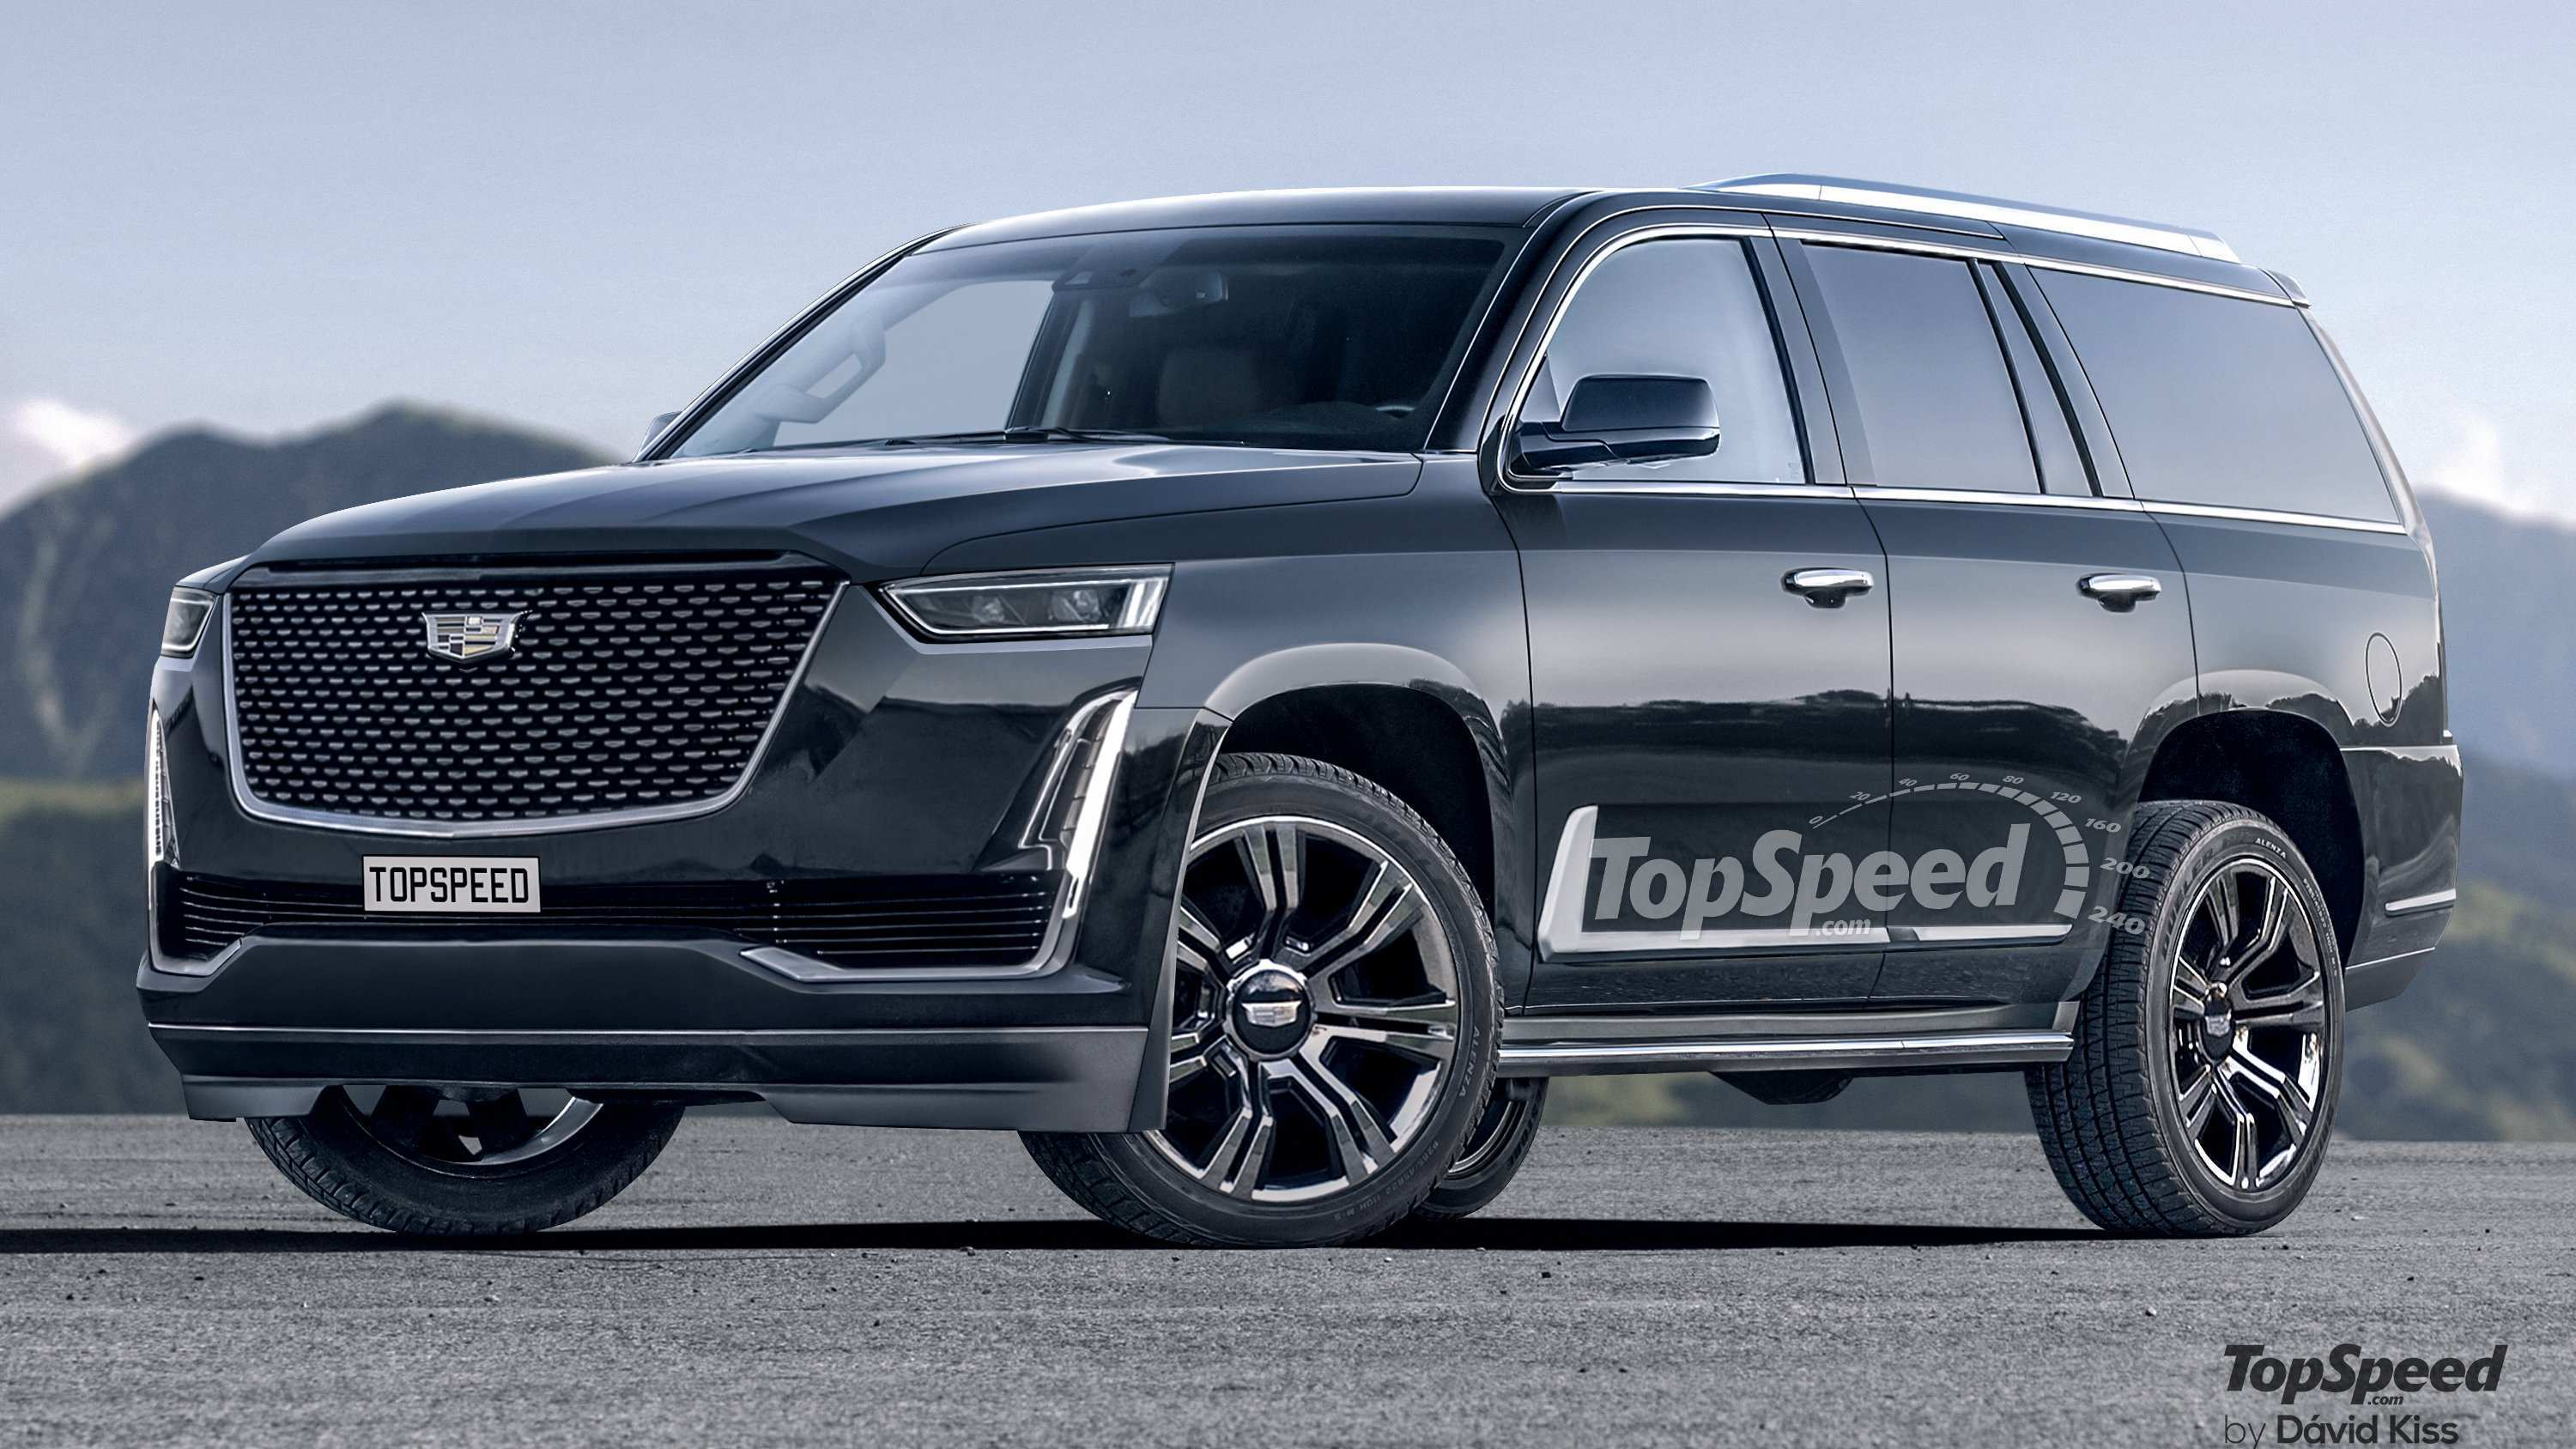 88 New 2020 Cadillac Truck Exterior and Interior for 2020 Cadillac Truck